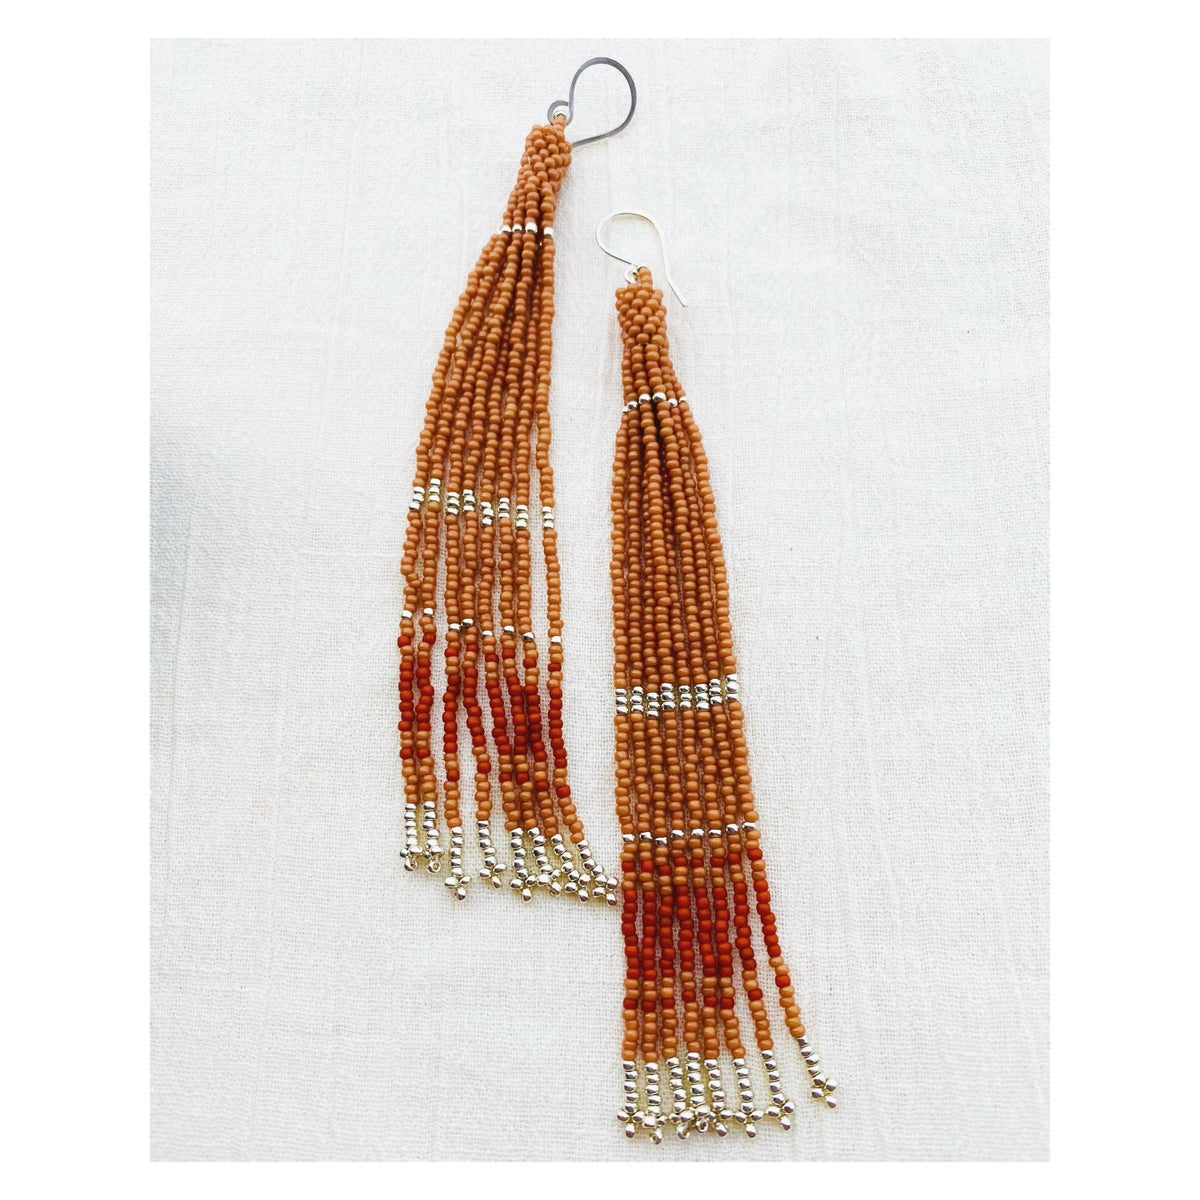 Image of Rosewood + Silver Cylinder Earrings